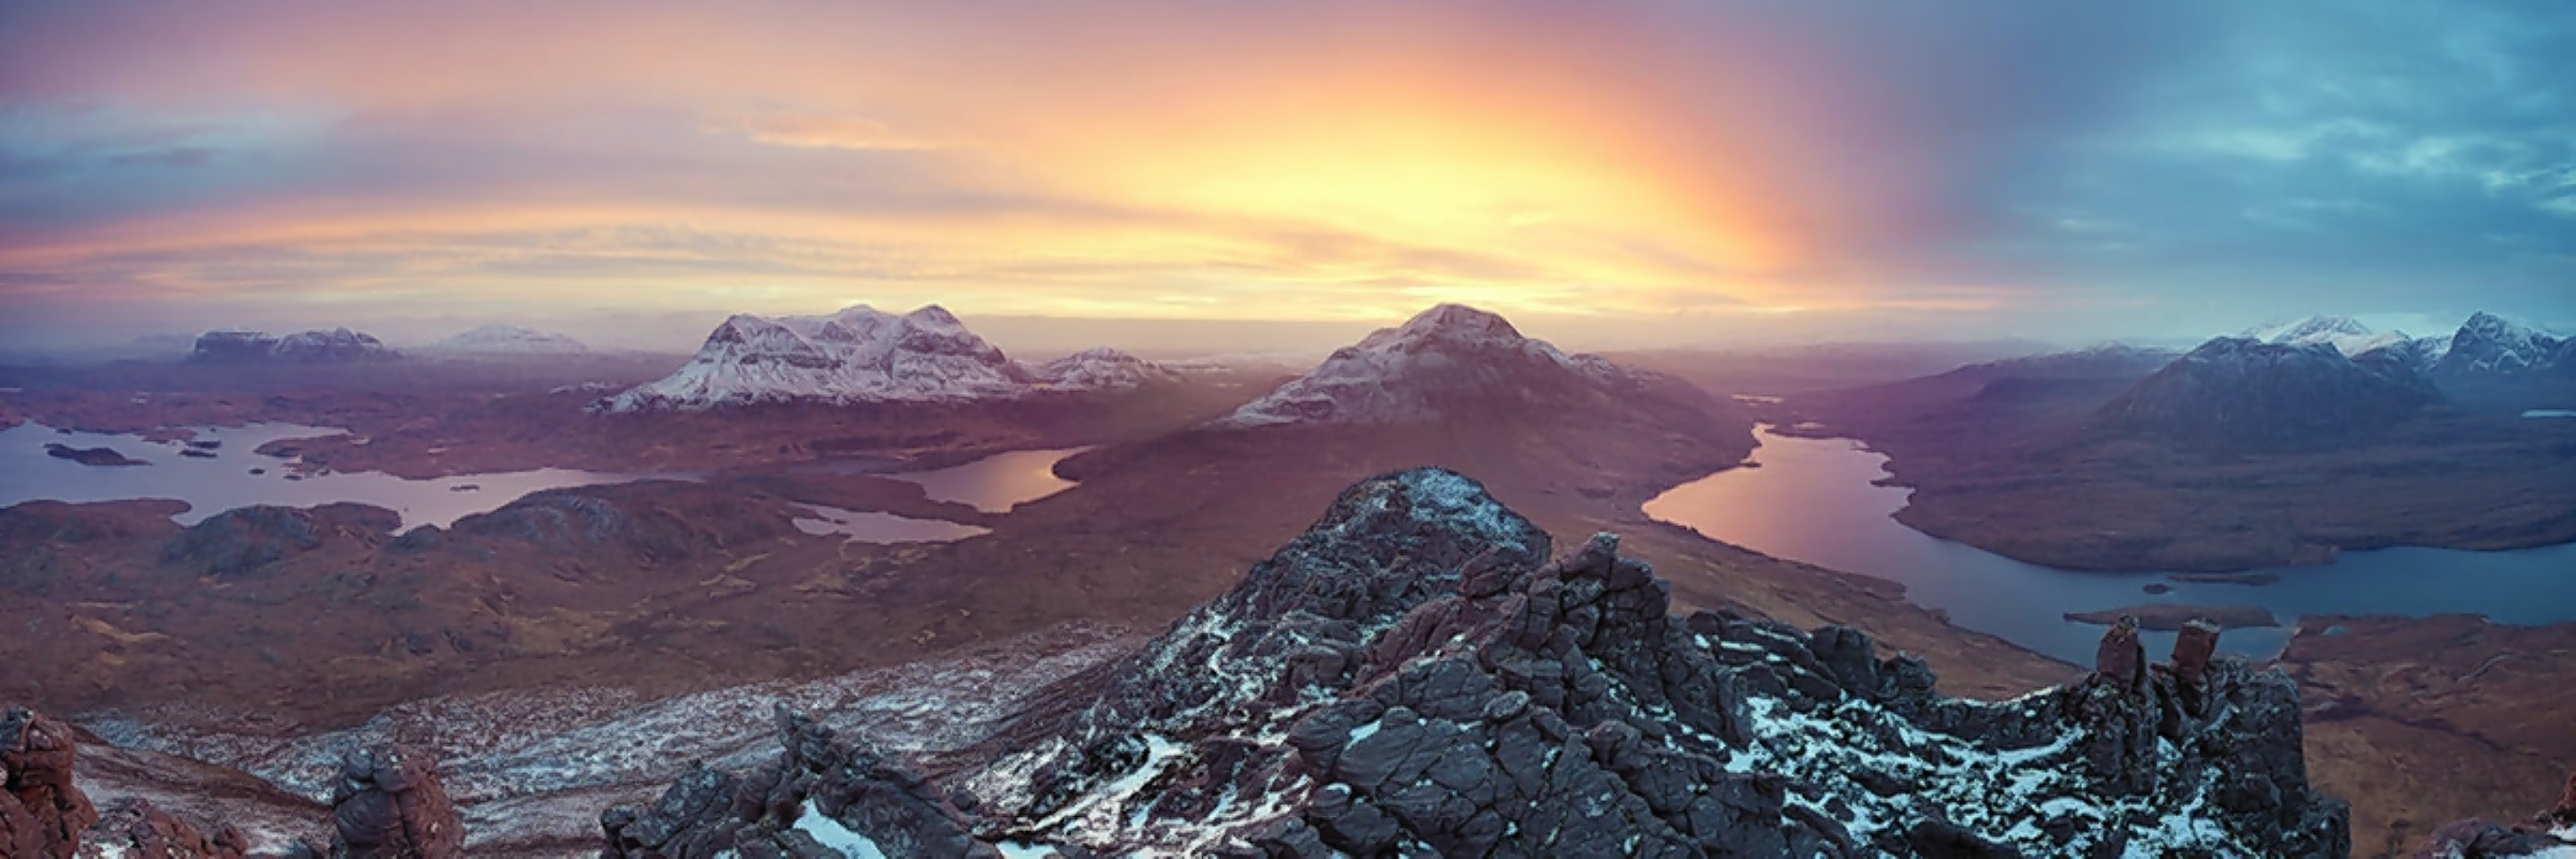 The Assynt mountain range, with Suilven in the background